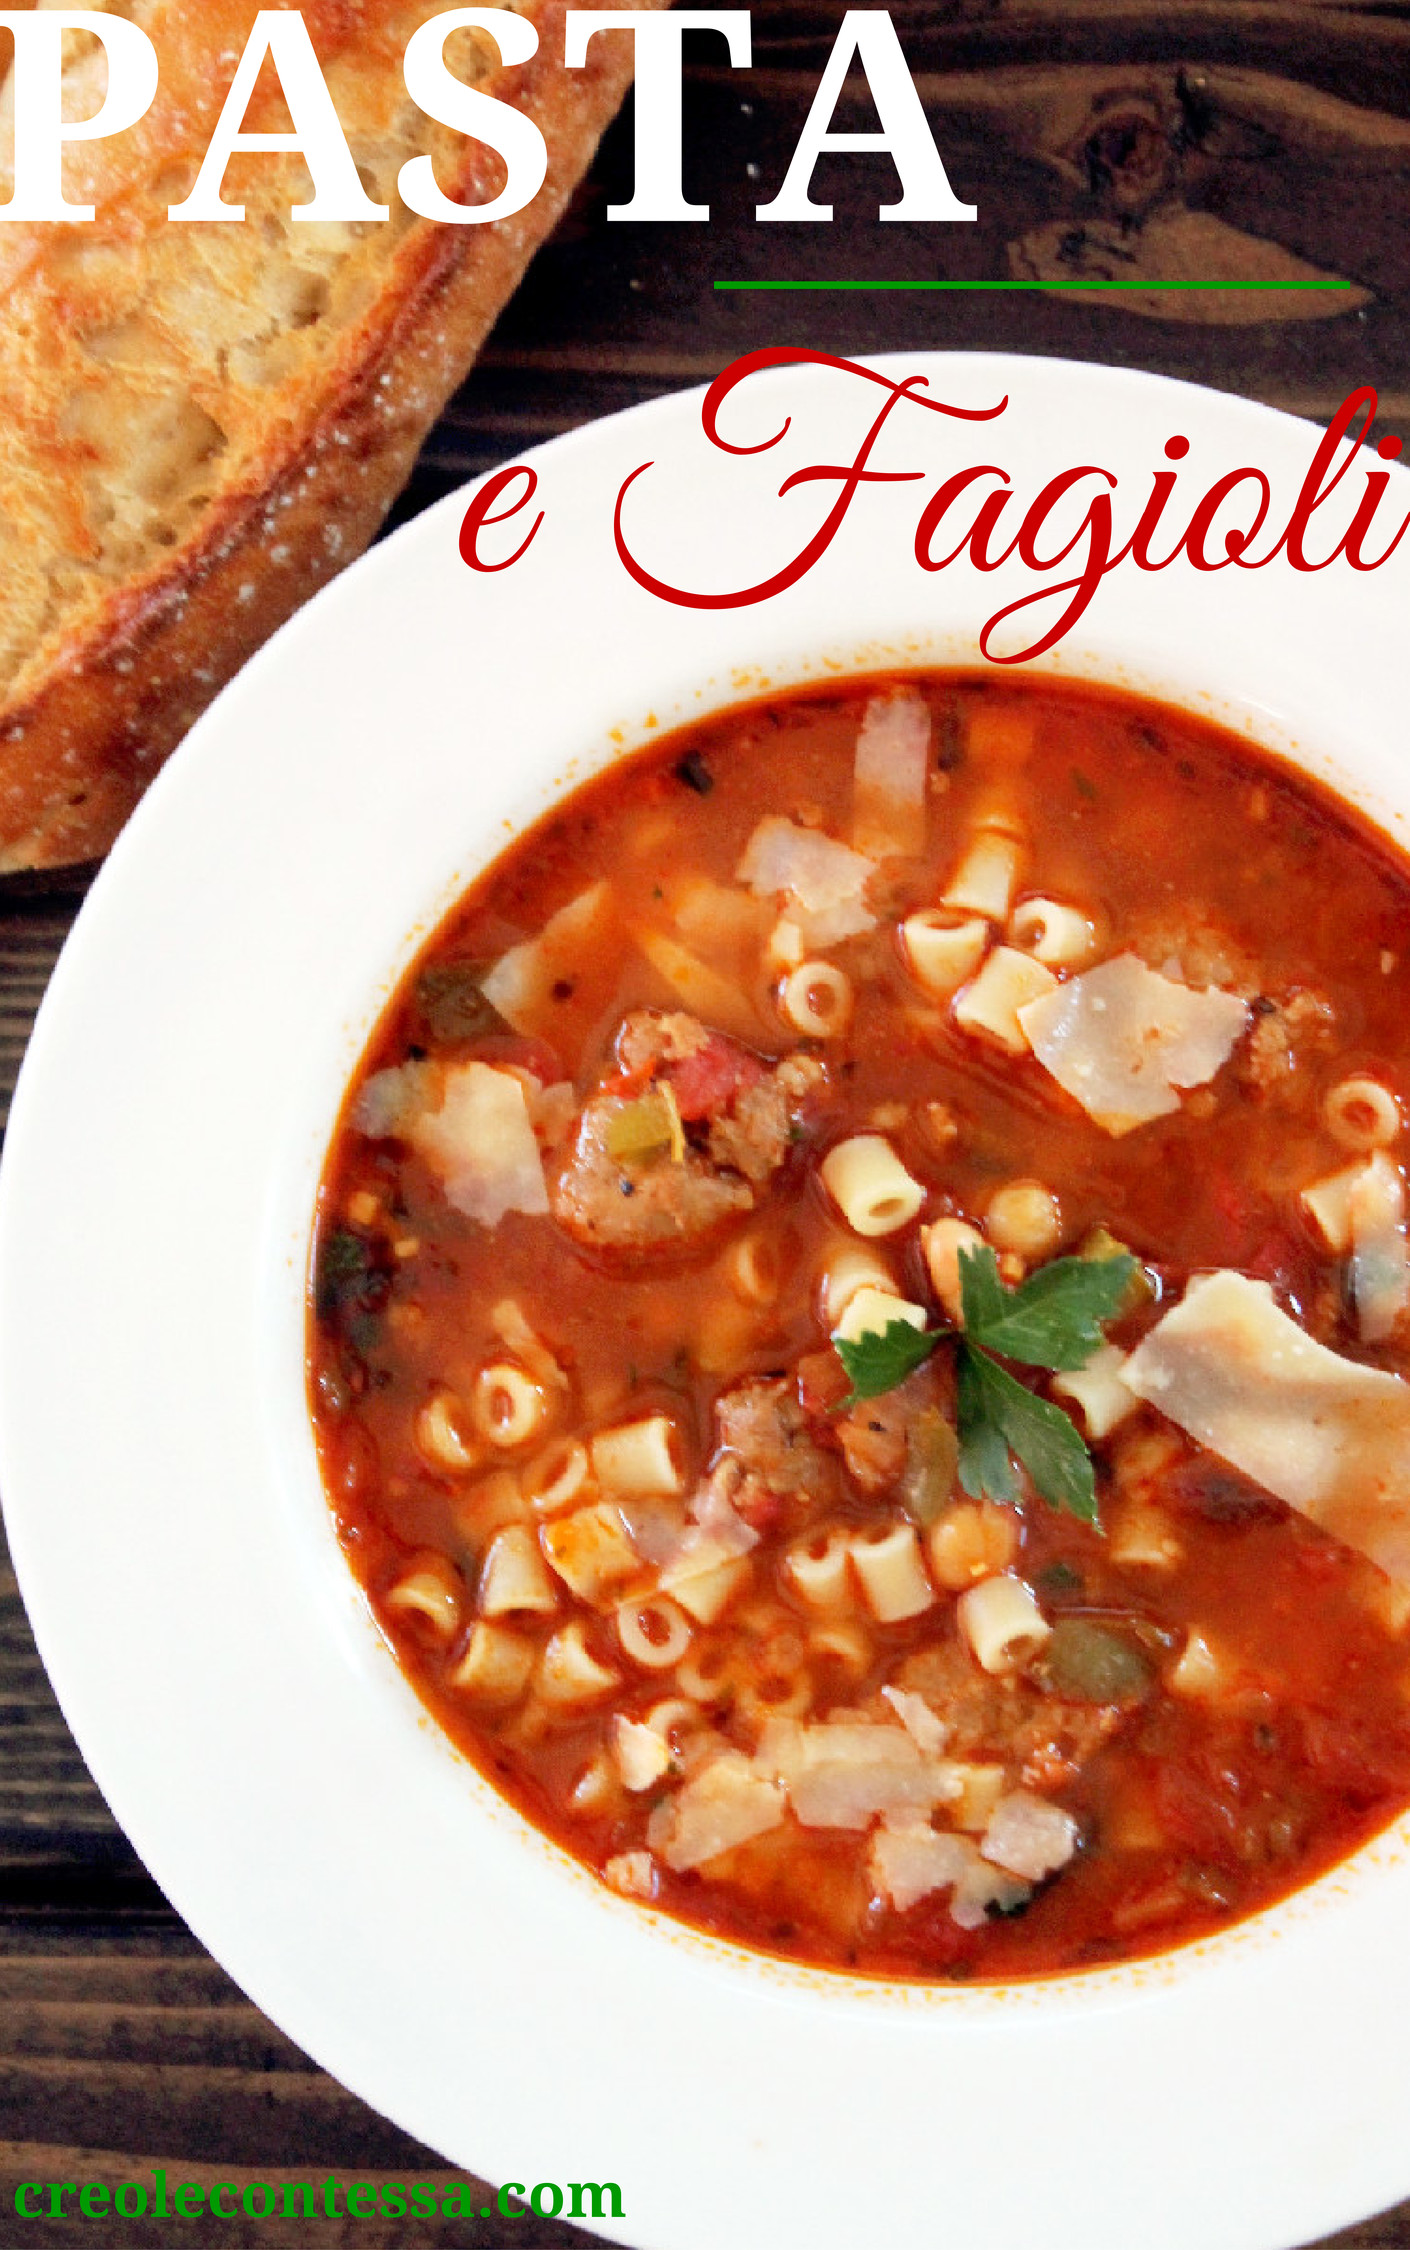 30 minutes, the soup is all ready to eat. I served my Pasta e Fagioli ...